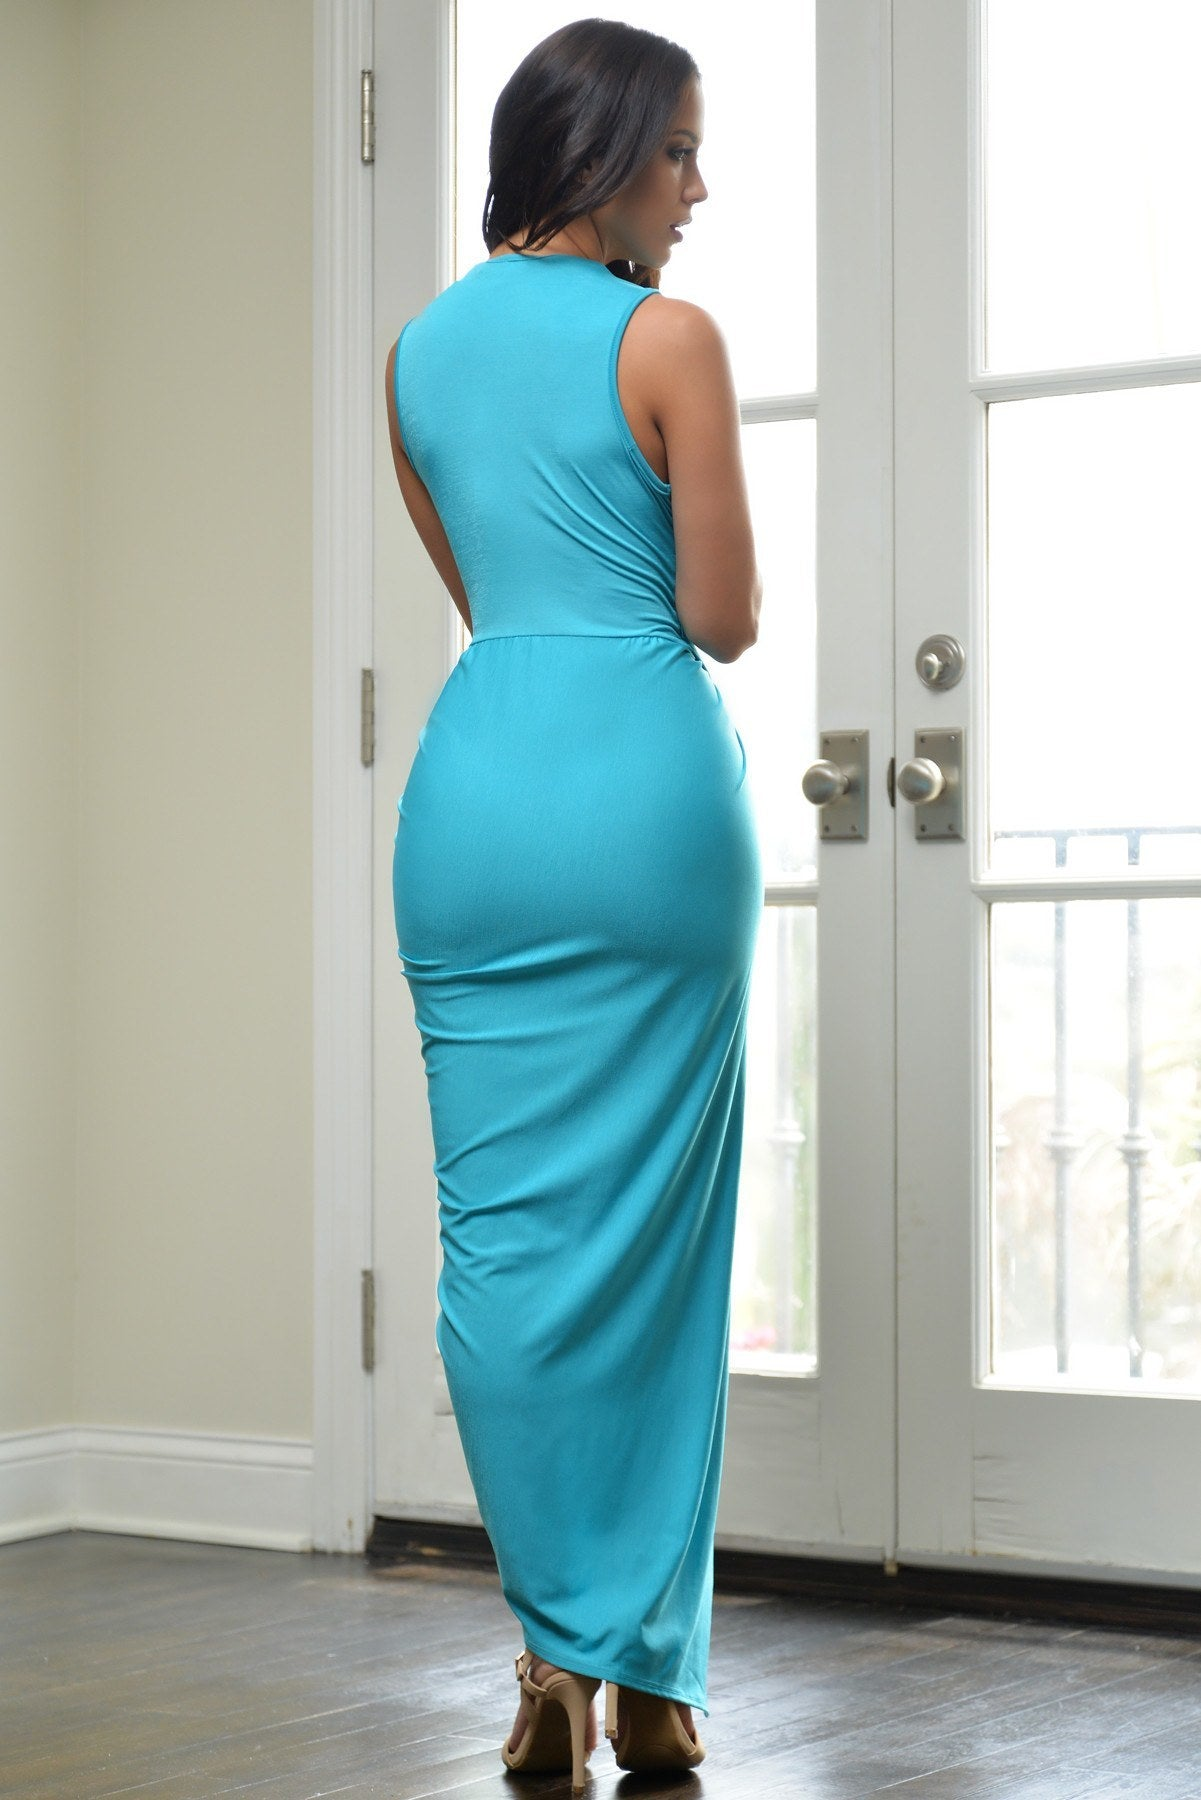 Day Dreaming Dress Turquoise - Fashion Effect Store  - 3